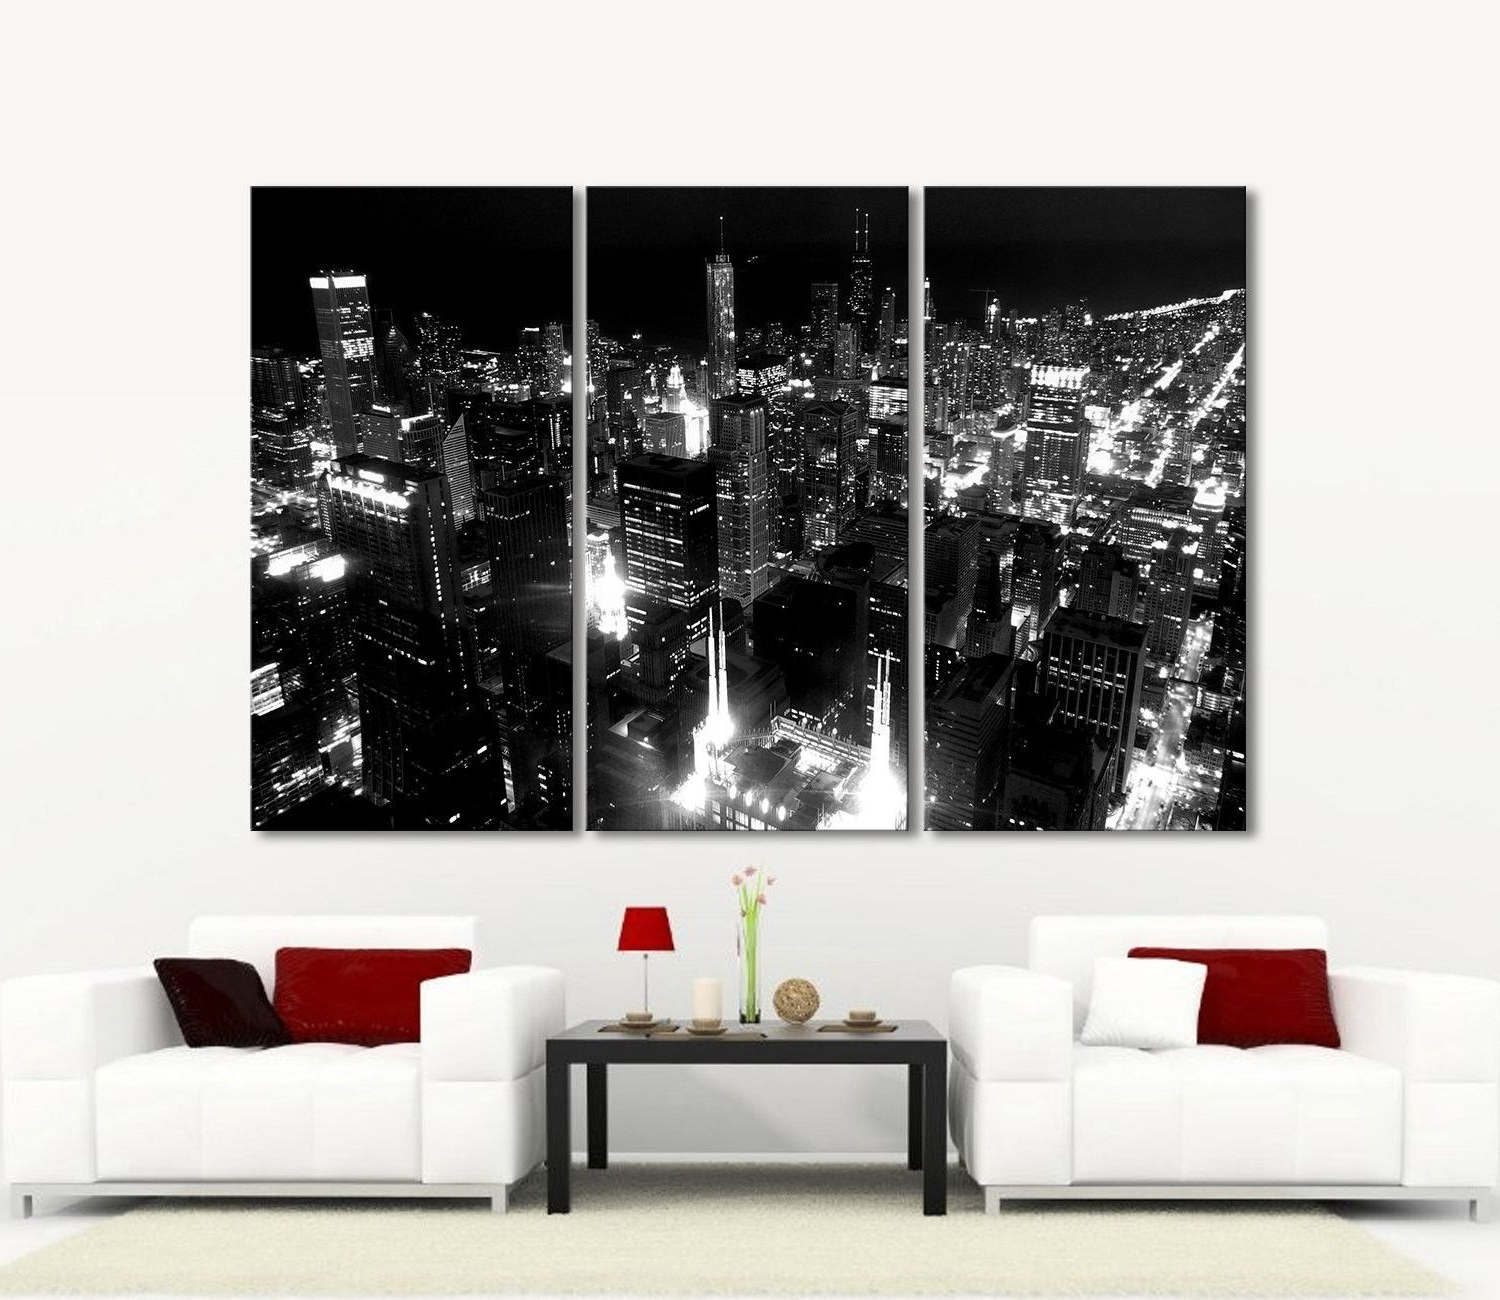 Large Wall Art Canvas Print Chicago City Skyline At Night – 3 Panel Inside Well Known Chicago Wall Art (View 6 of 15)